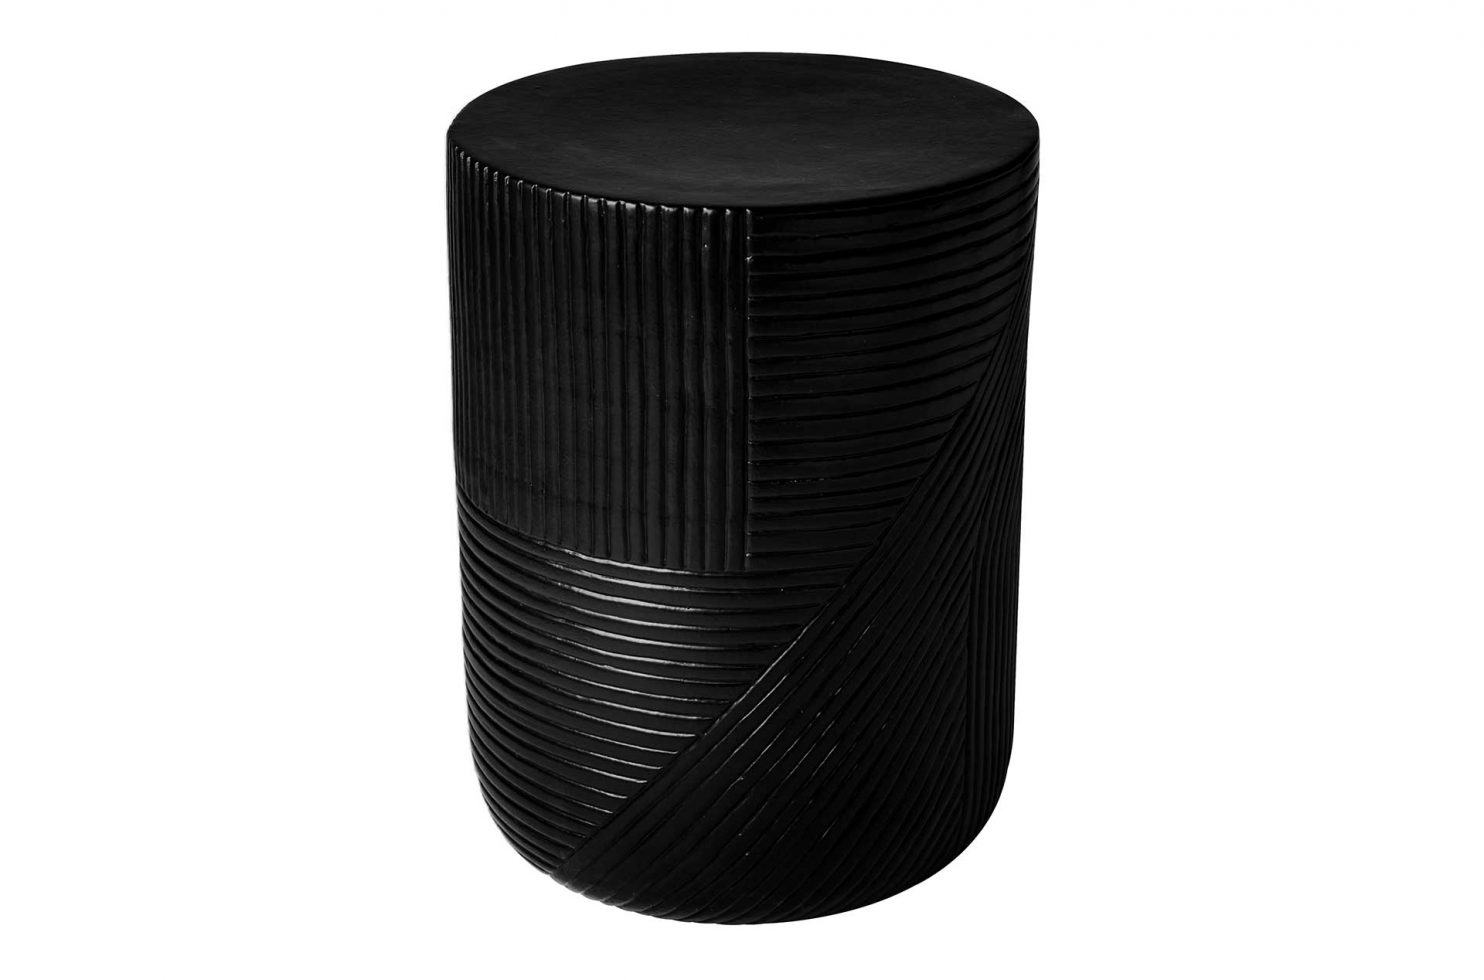 prov cer serenity textured side table 14in C30802532 coal 1 main2 web